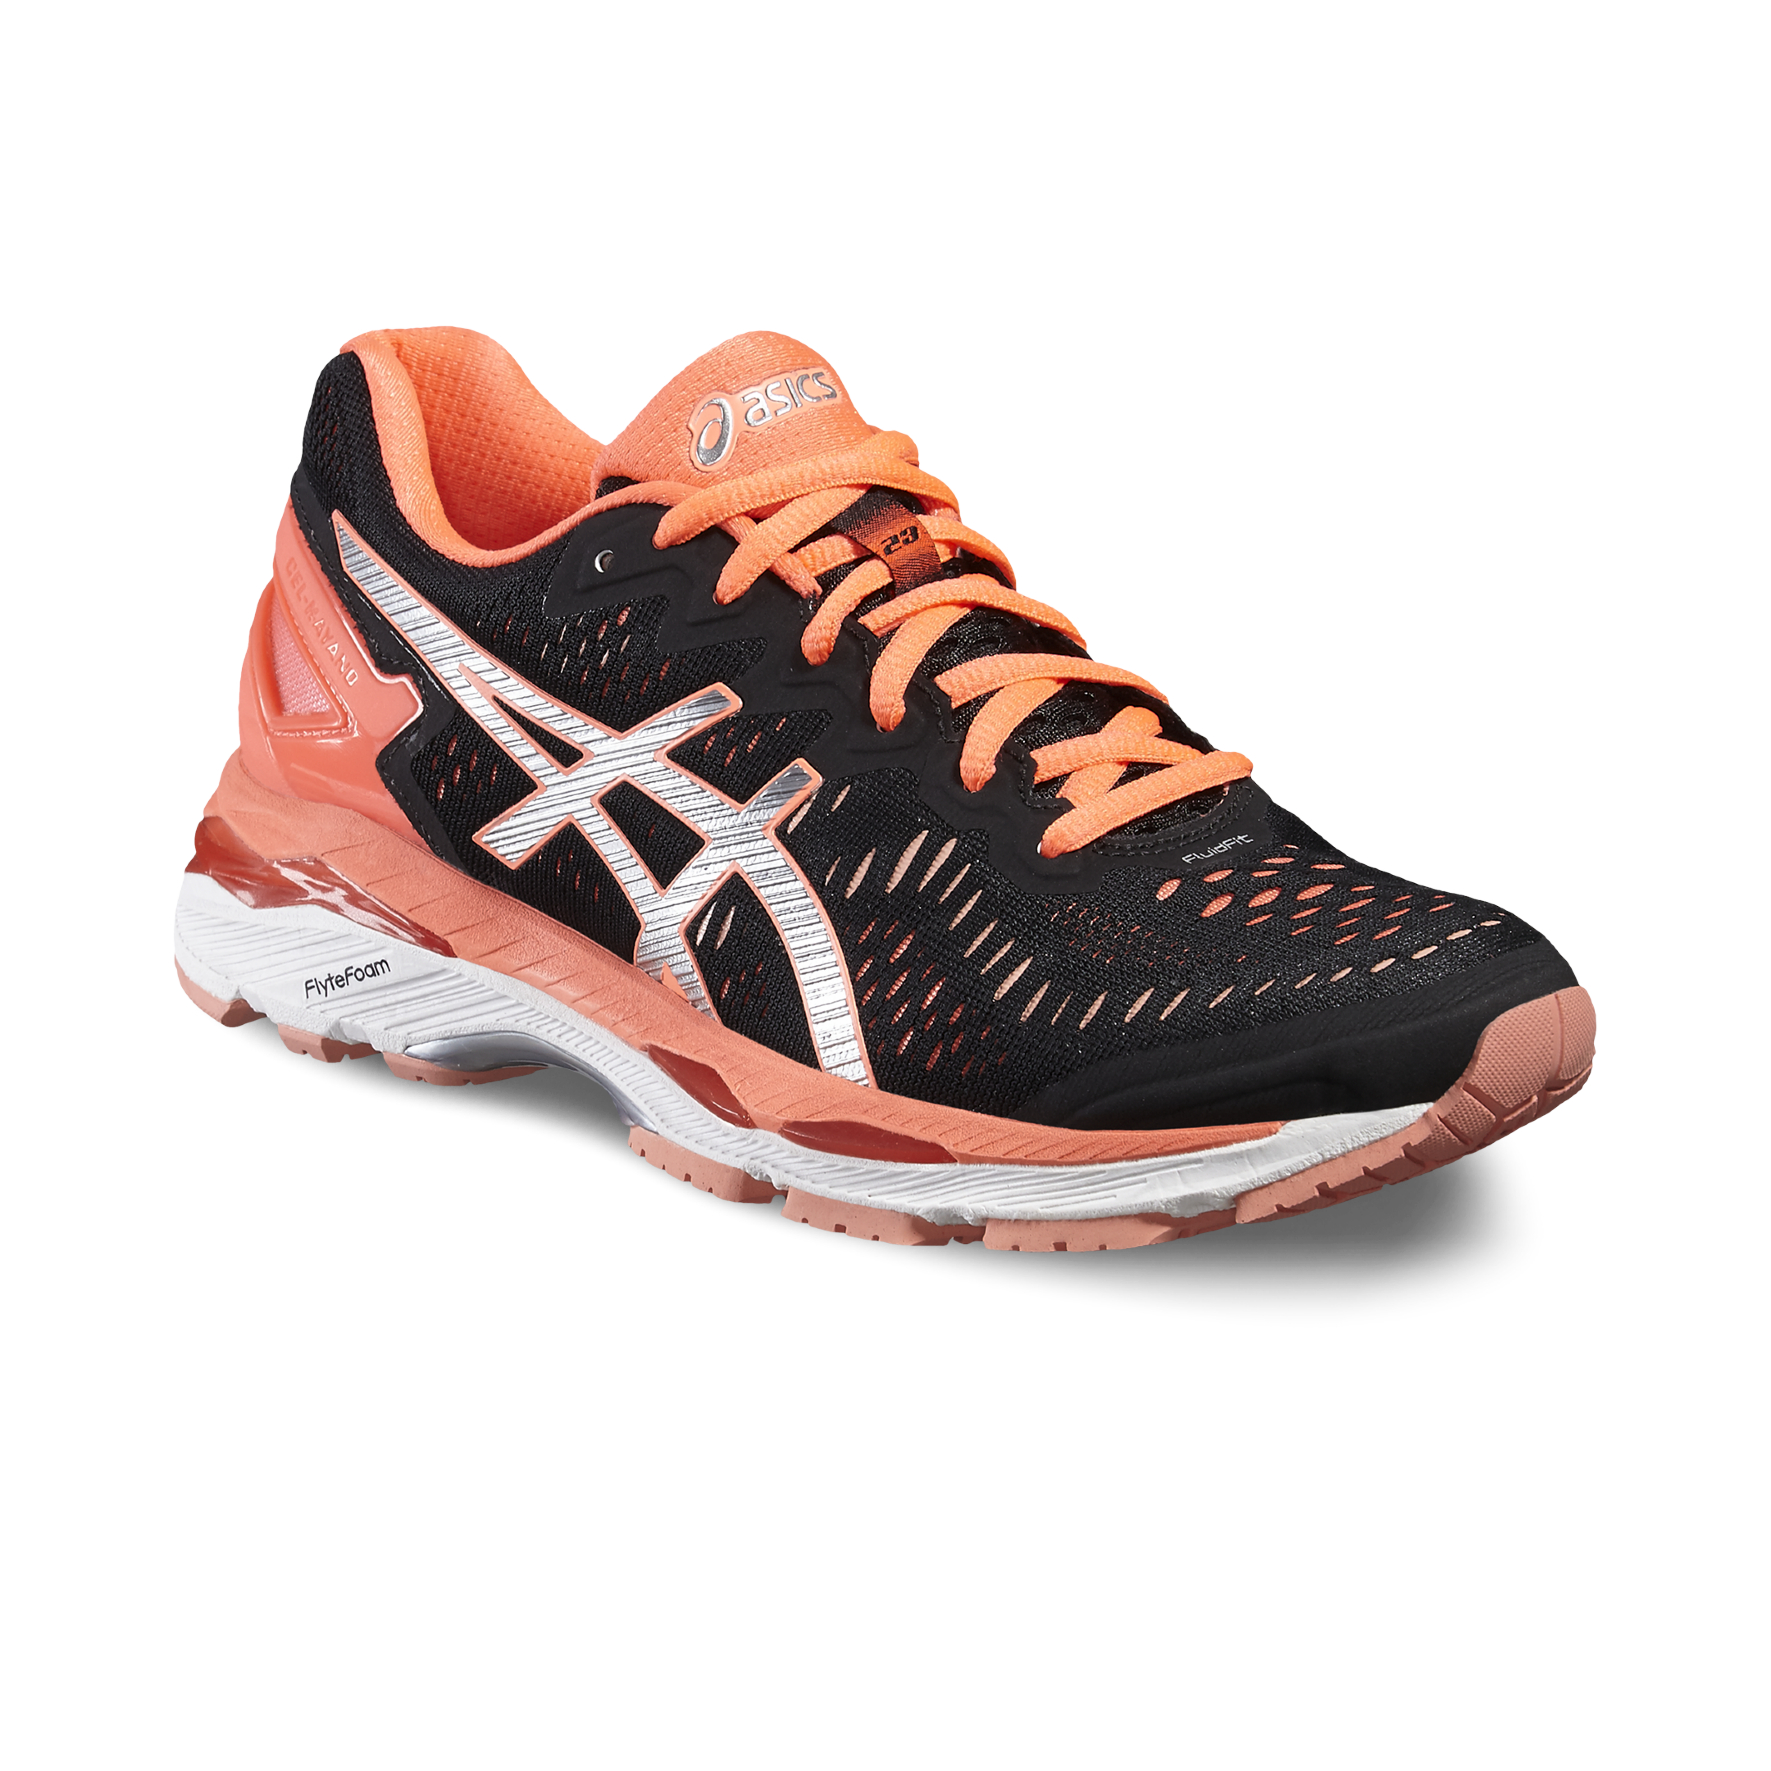 Acheter asics gel kayano 23 OFF76% 19929 womens Orange> Jusqu de à OFF76% de remise 053cb8a - resepmasakannusantara.website